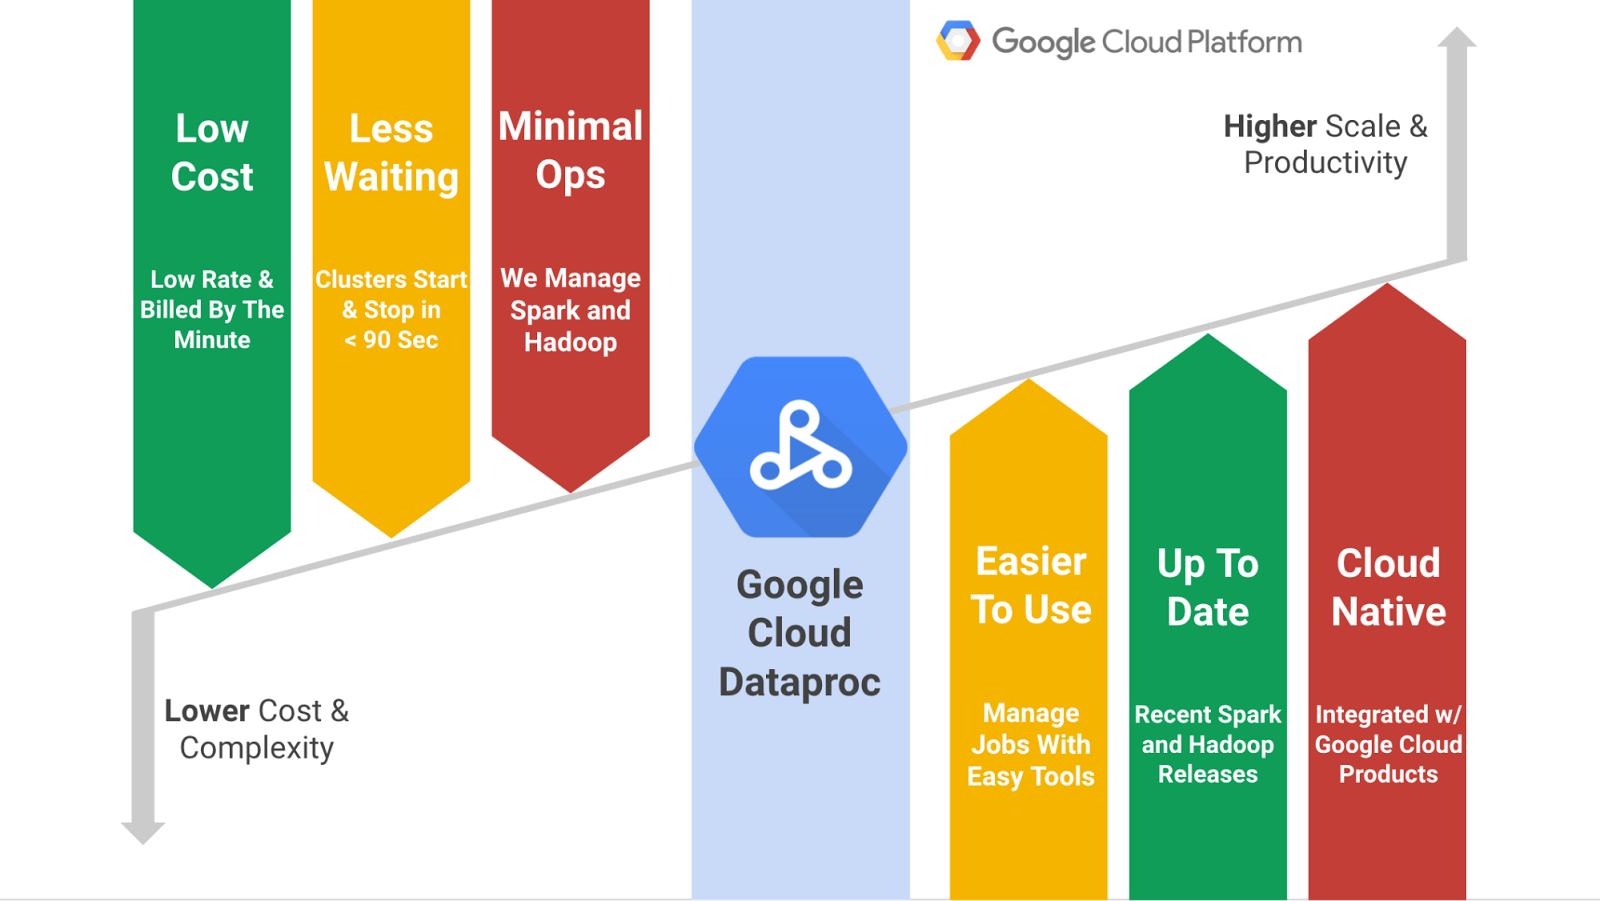 Run your Spark and Hadoop jobs as a Service with Dataproc